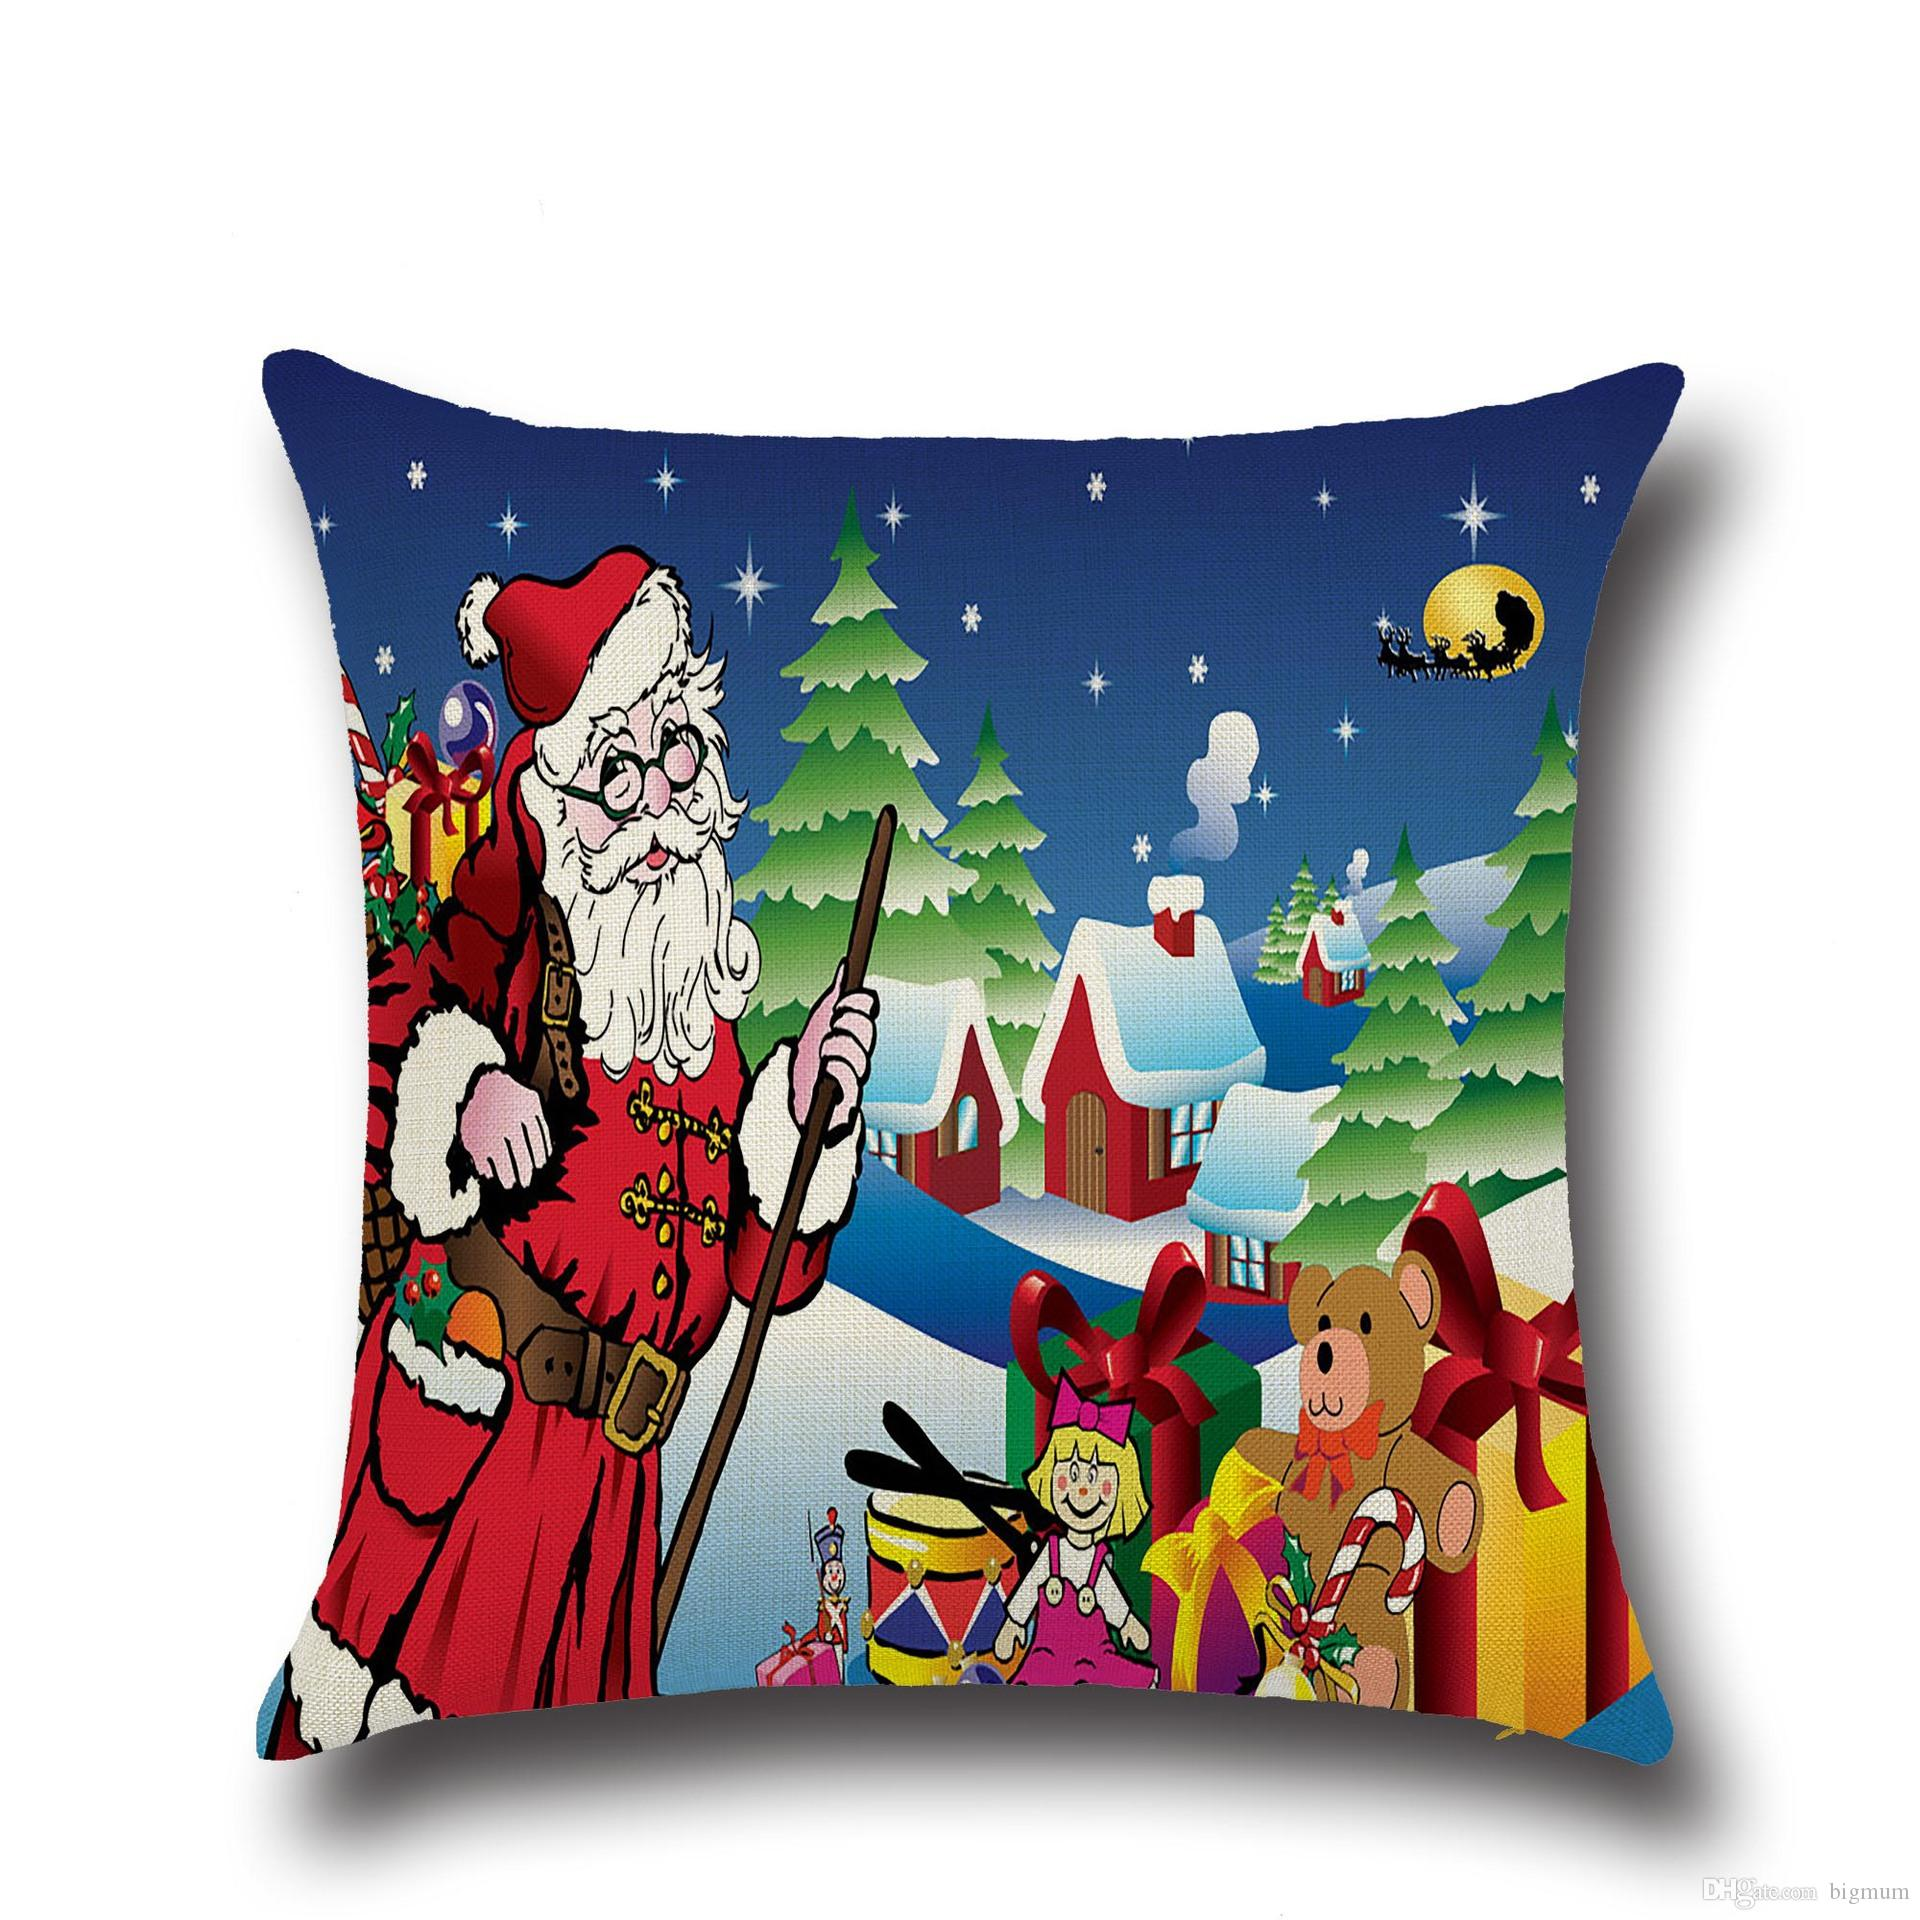 Merry Christmas Pillow Cases Hot Selling Gifts Tree Santa Claus Snowman Linen Prited Throw Cushion Covers Home Decor